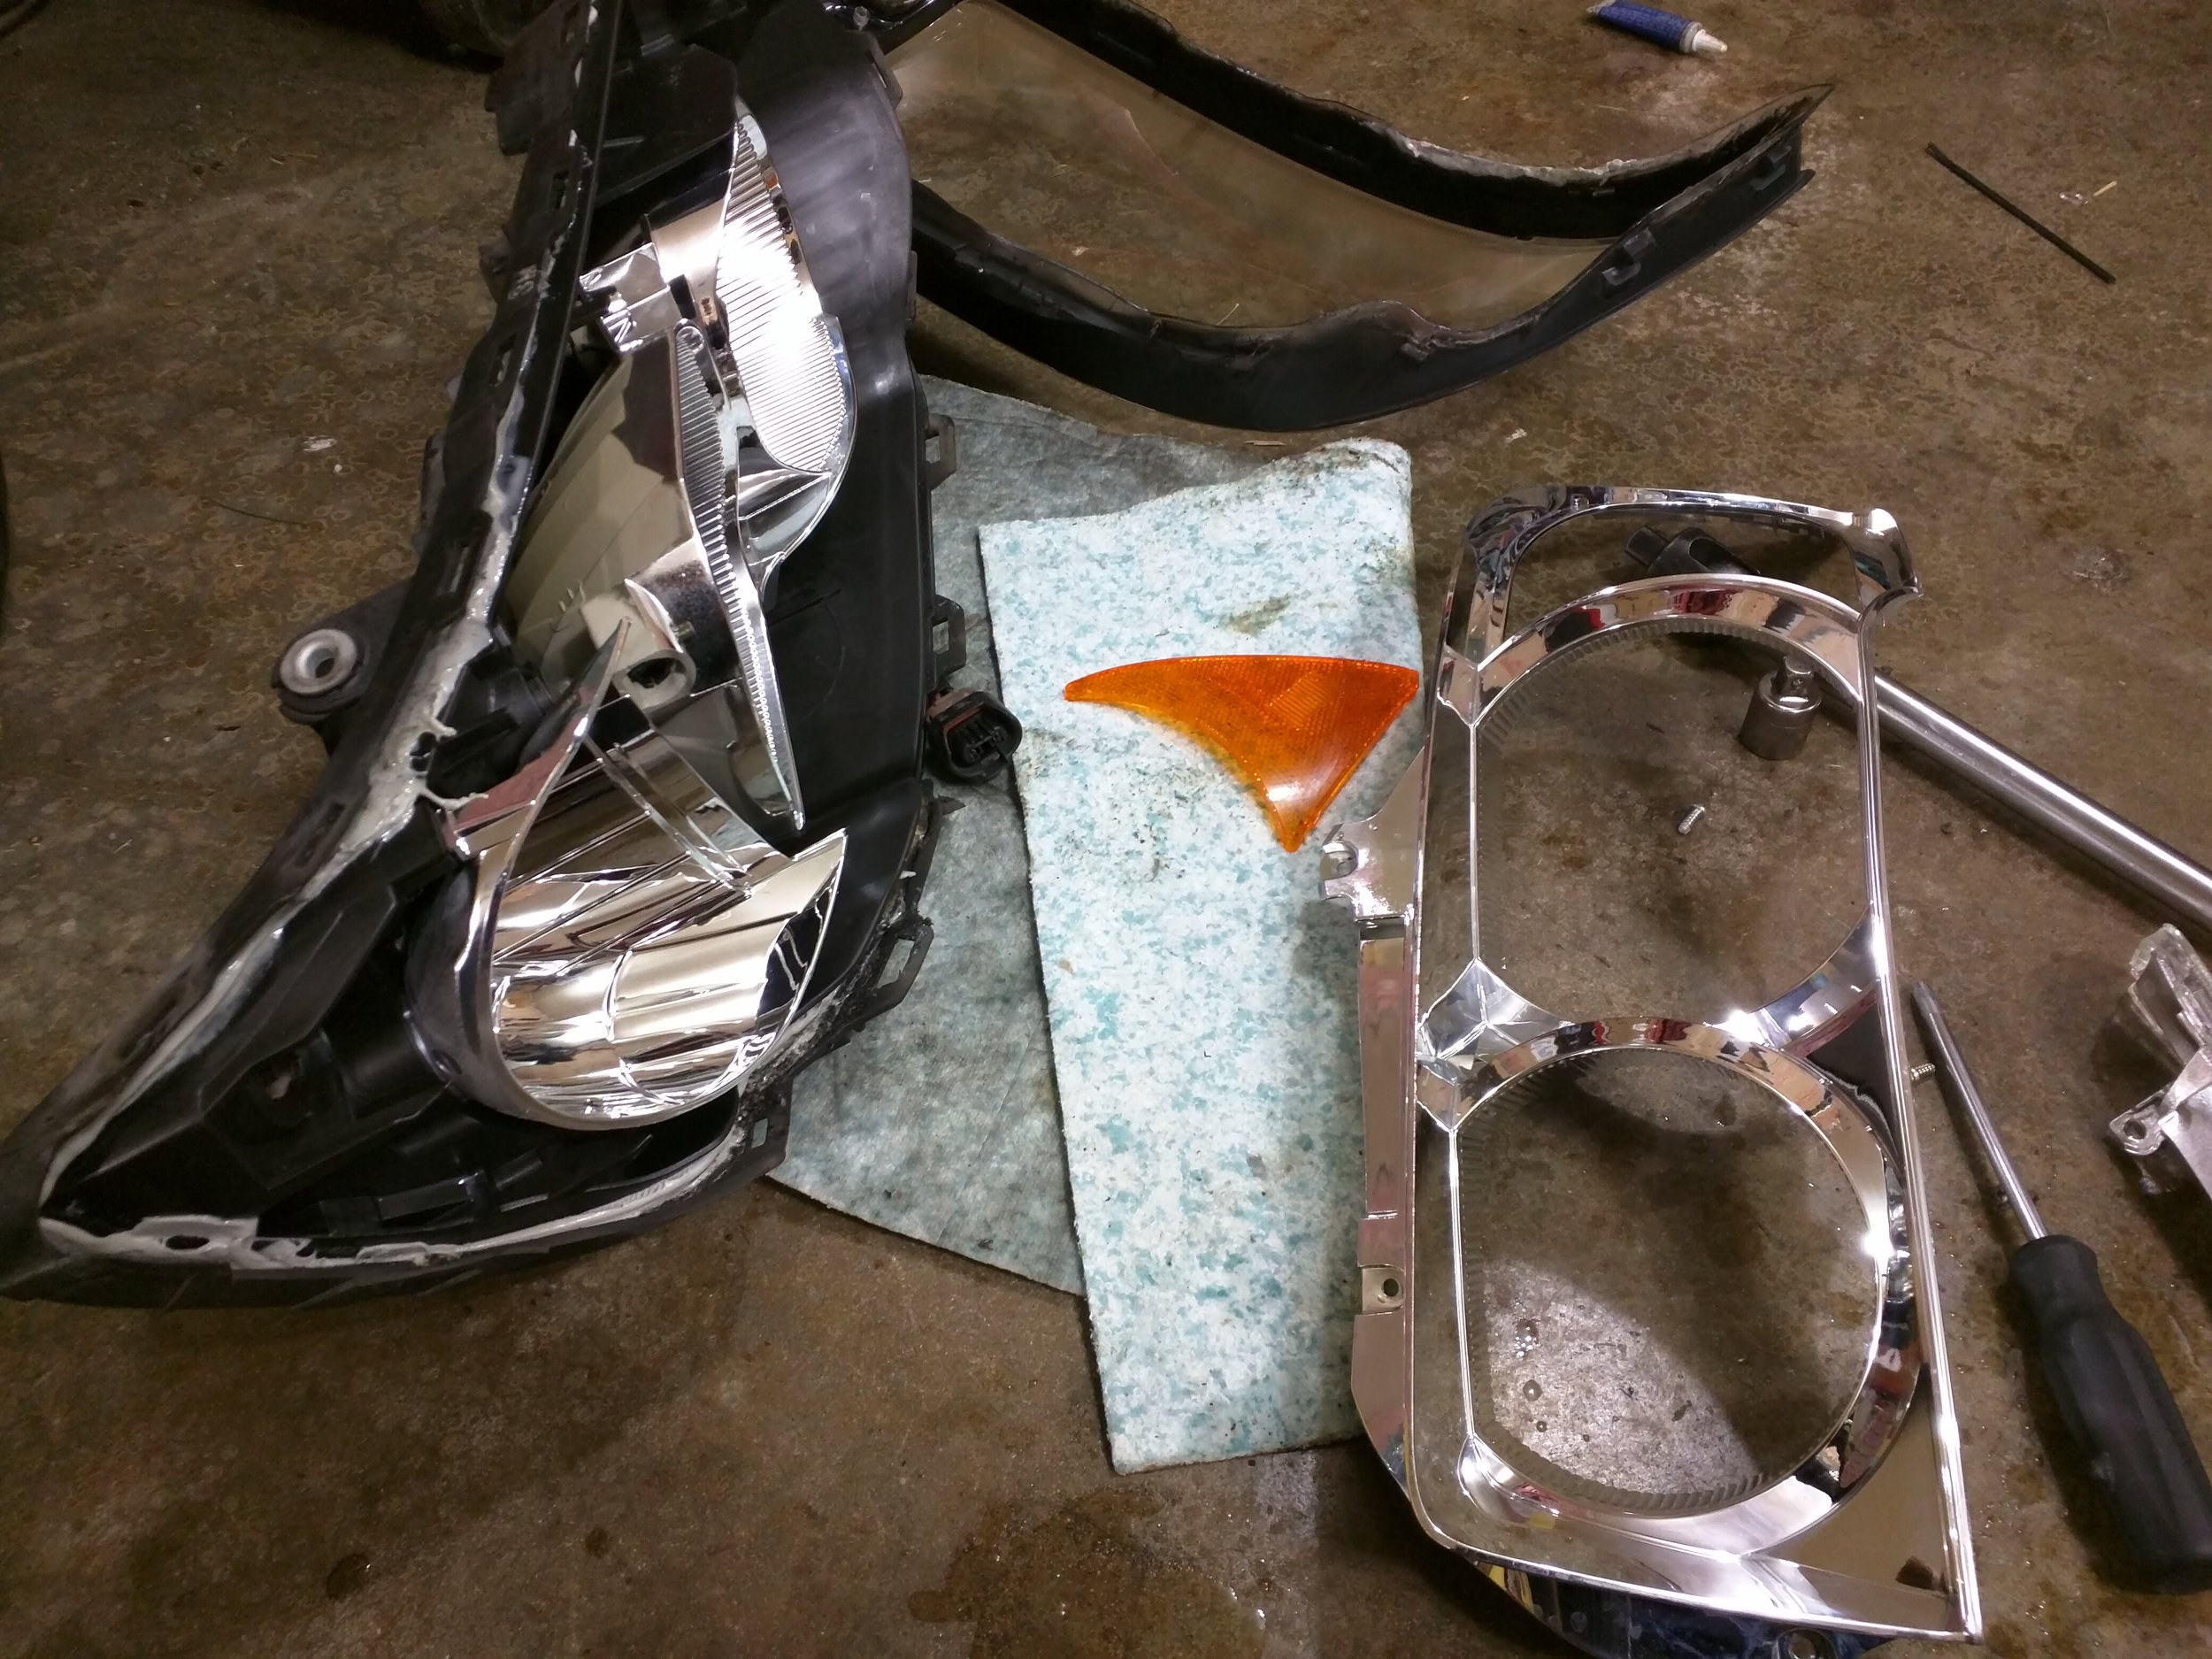 You can easily dissemble the inner chrome parts to customize it to your liking.